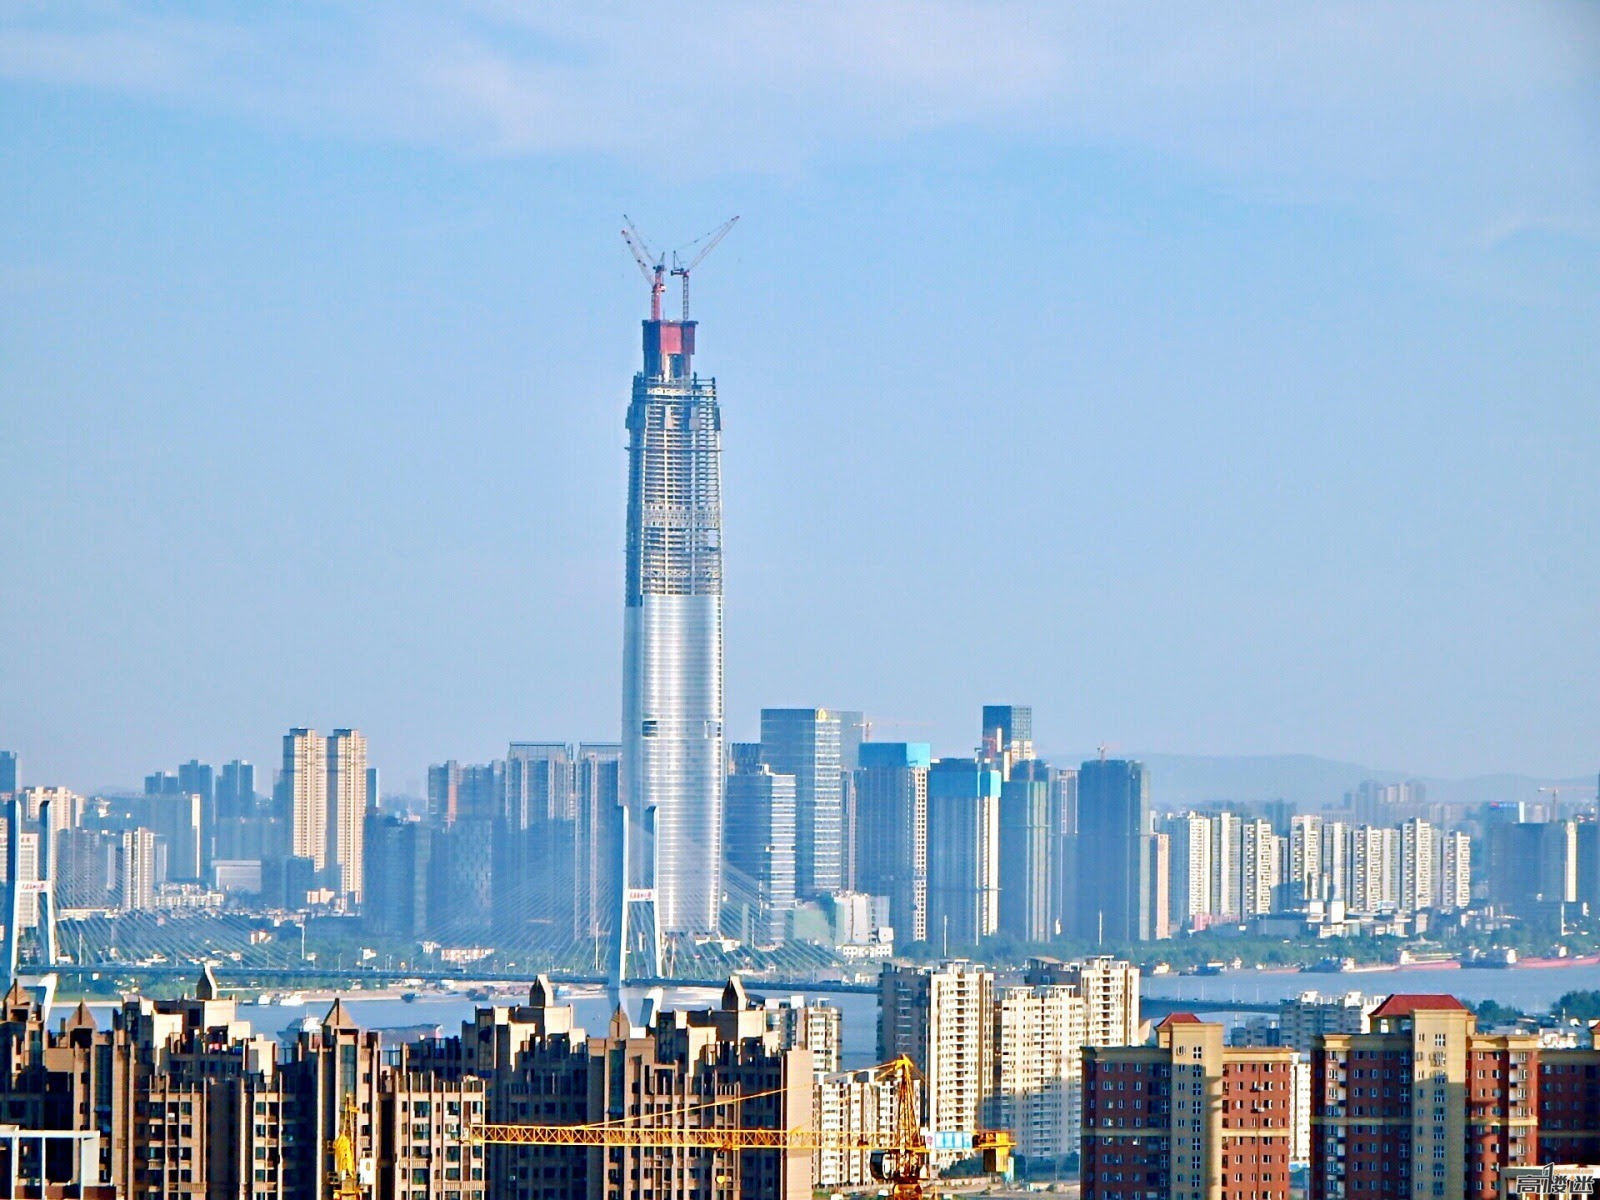 Wuhan Greenland Center 476m 1560ft 97 Fl T O Page 133 Skyscrapercity